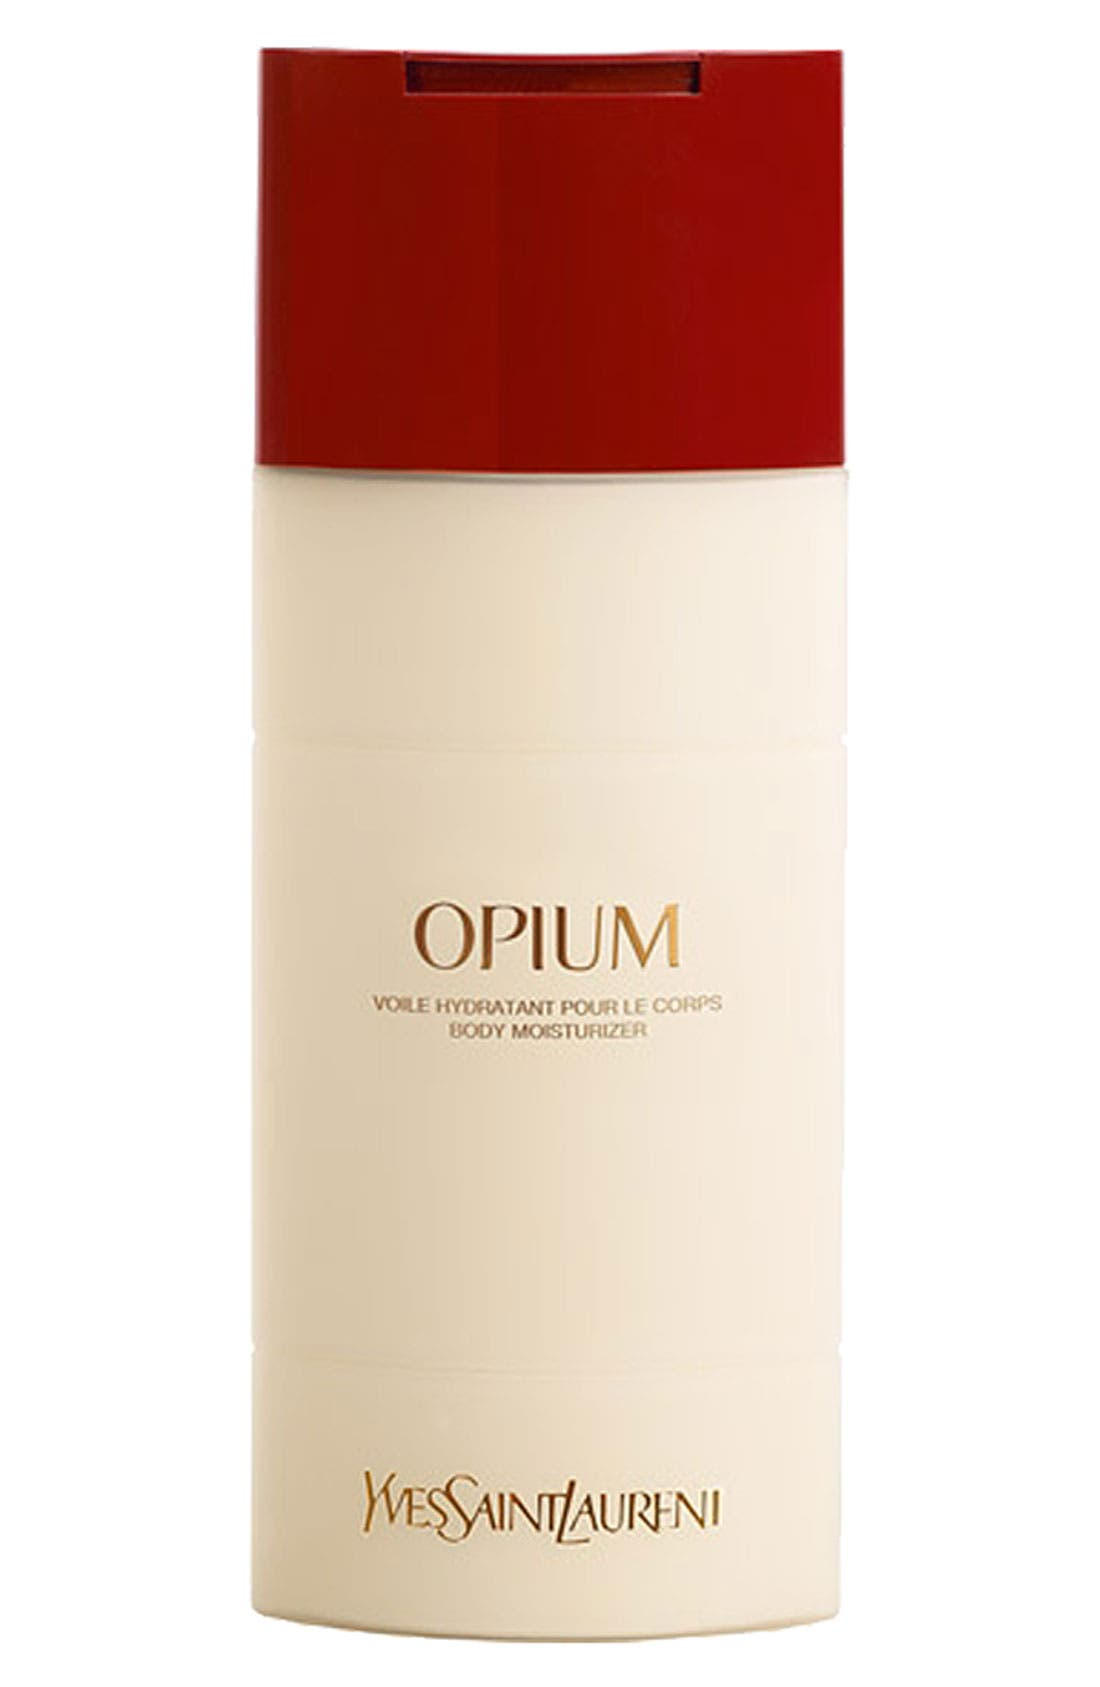 Yves Saint Laurent 'Opium' Body Moisturizer